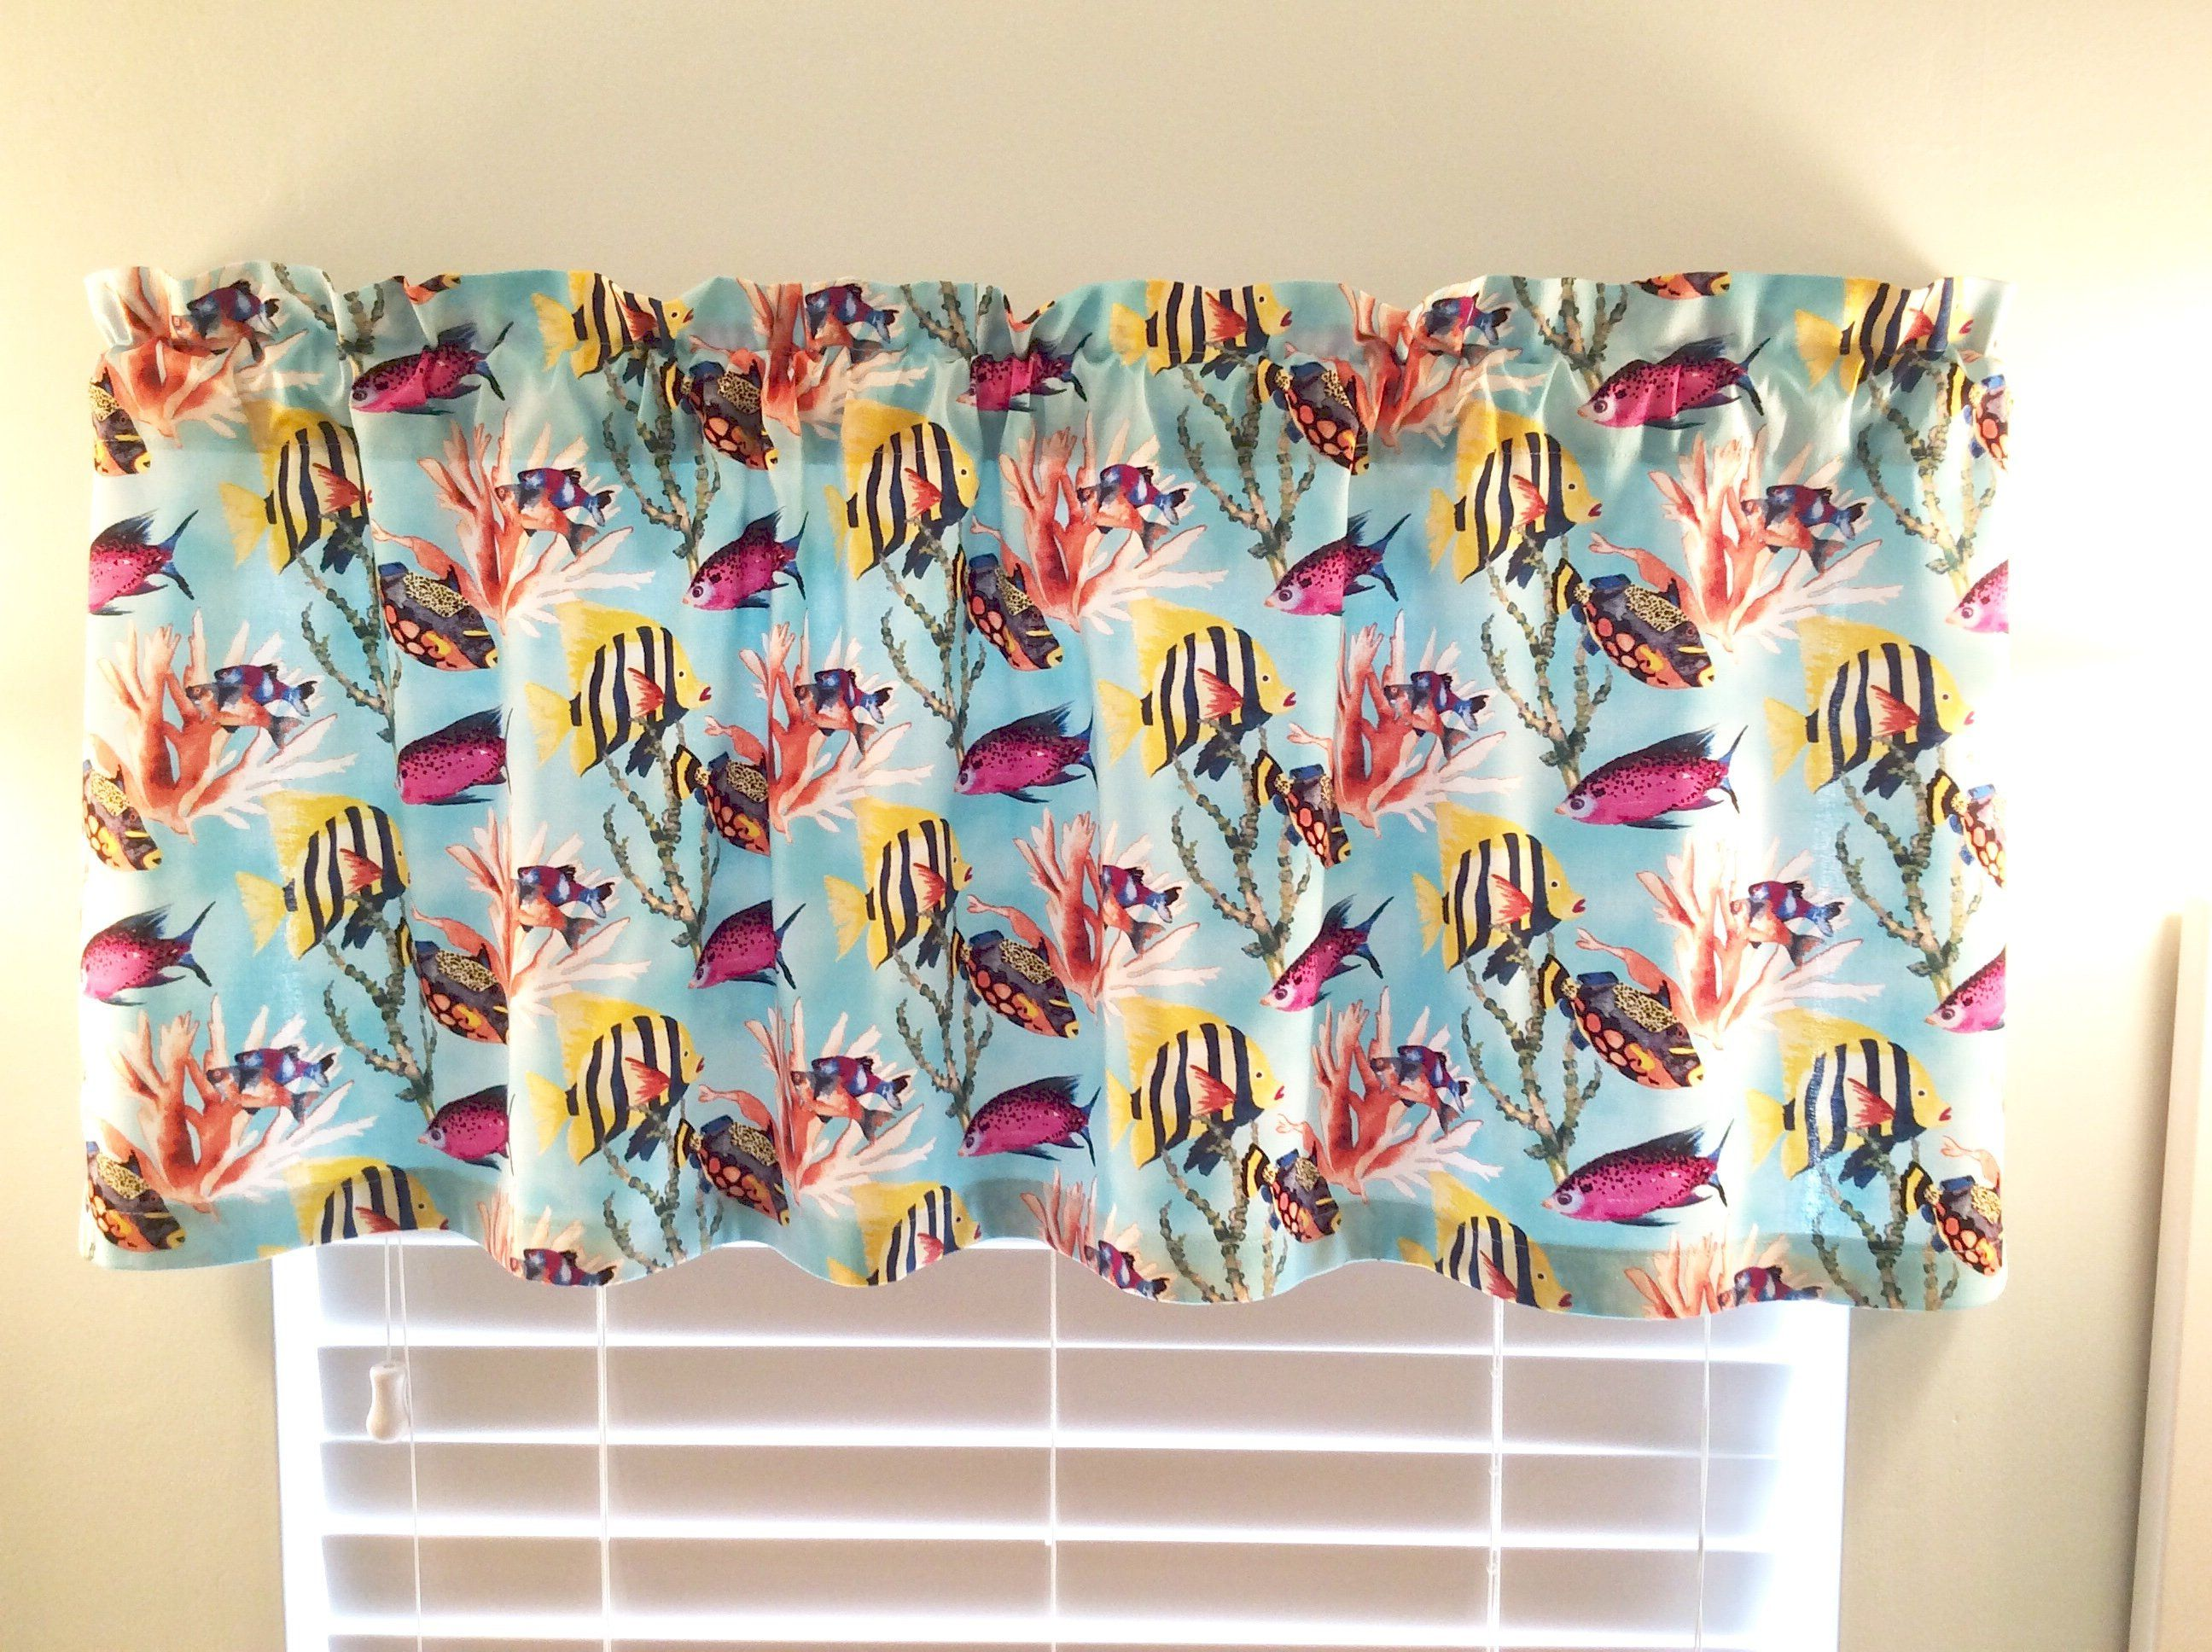 Tropical Window Valance With Colorful Fish And Coral Design On